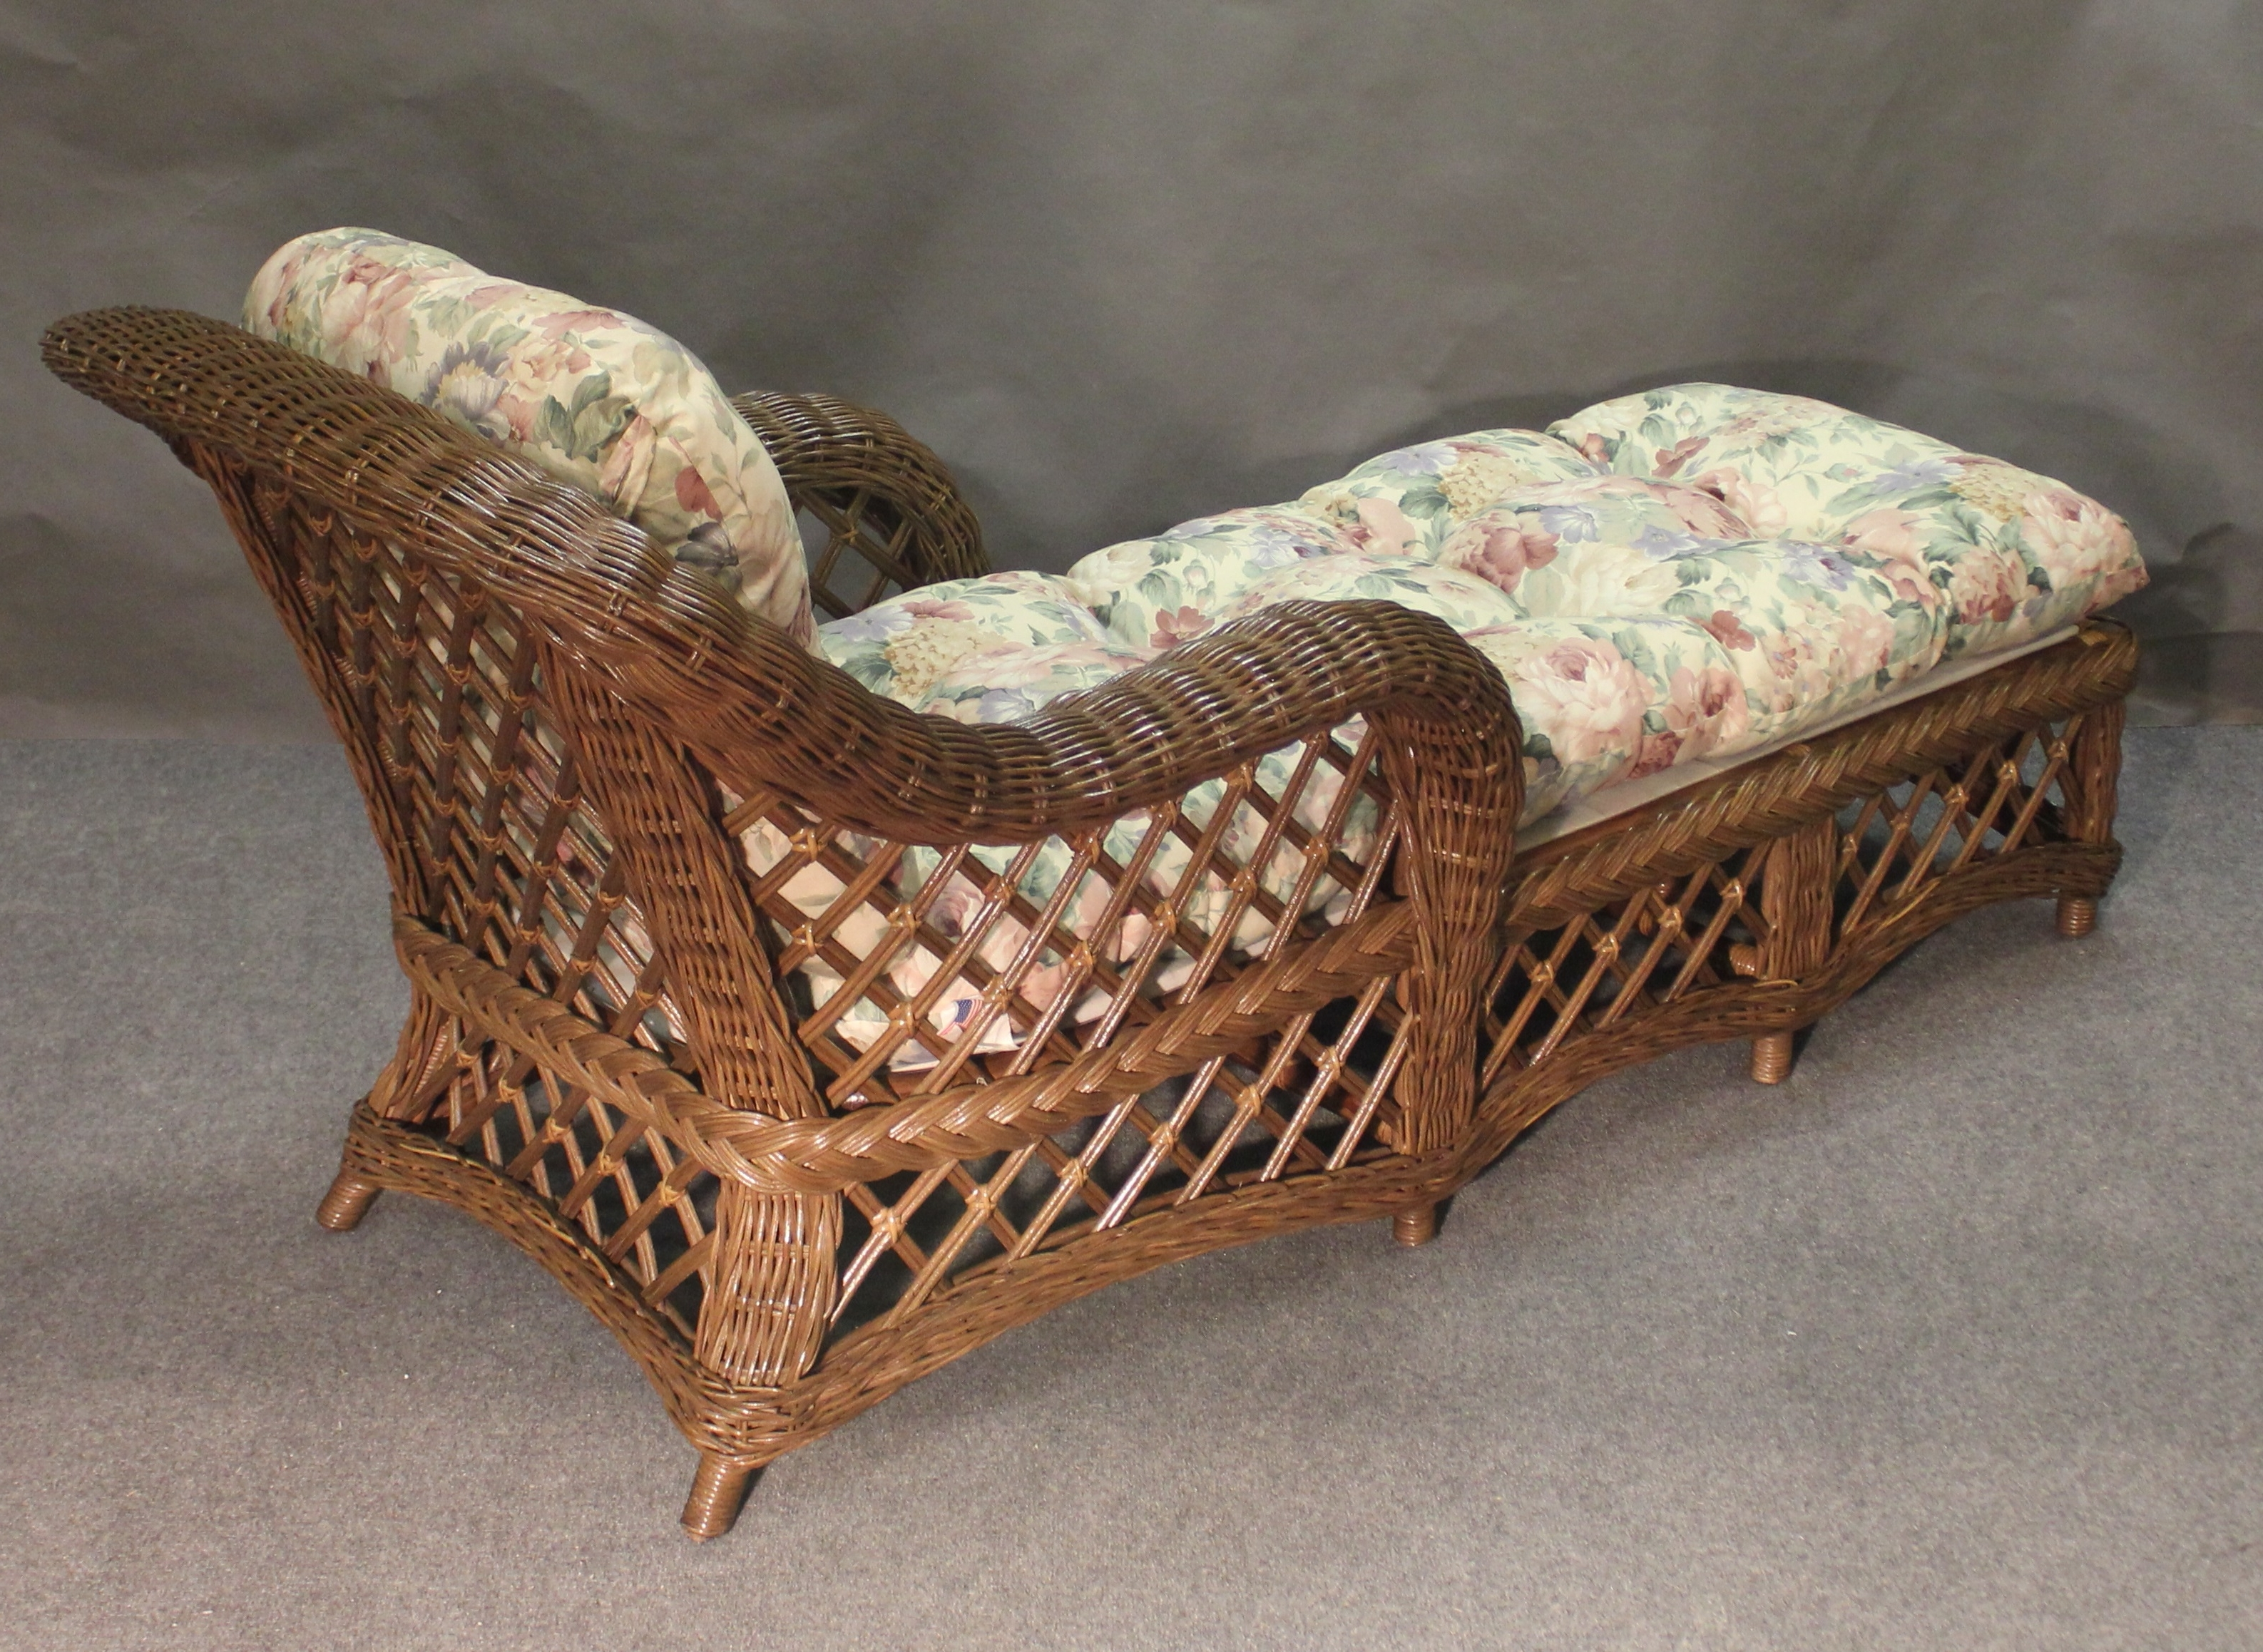 2017 Wicker Chaise Lounges Intended For Cape Cod Wicker Chaise Lounge, All About Wicker (View 2 of 15)